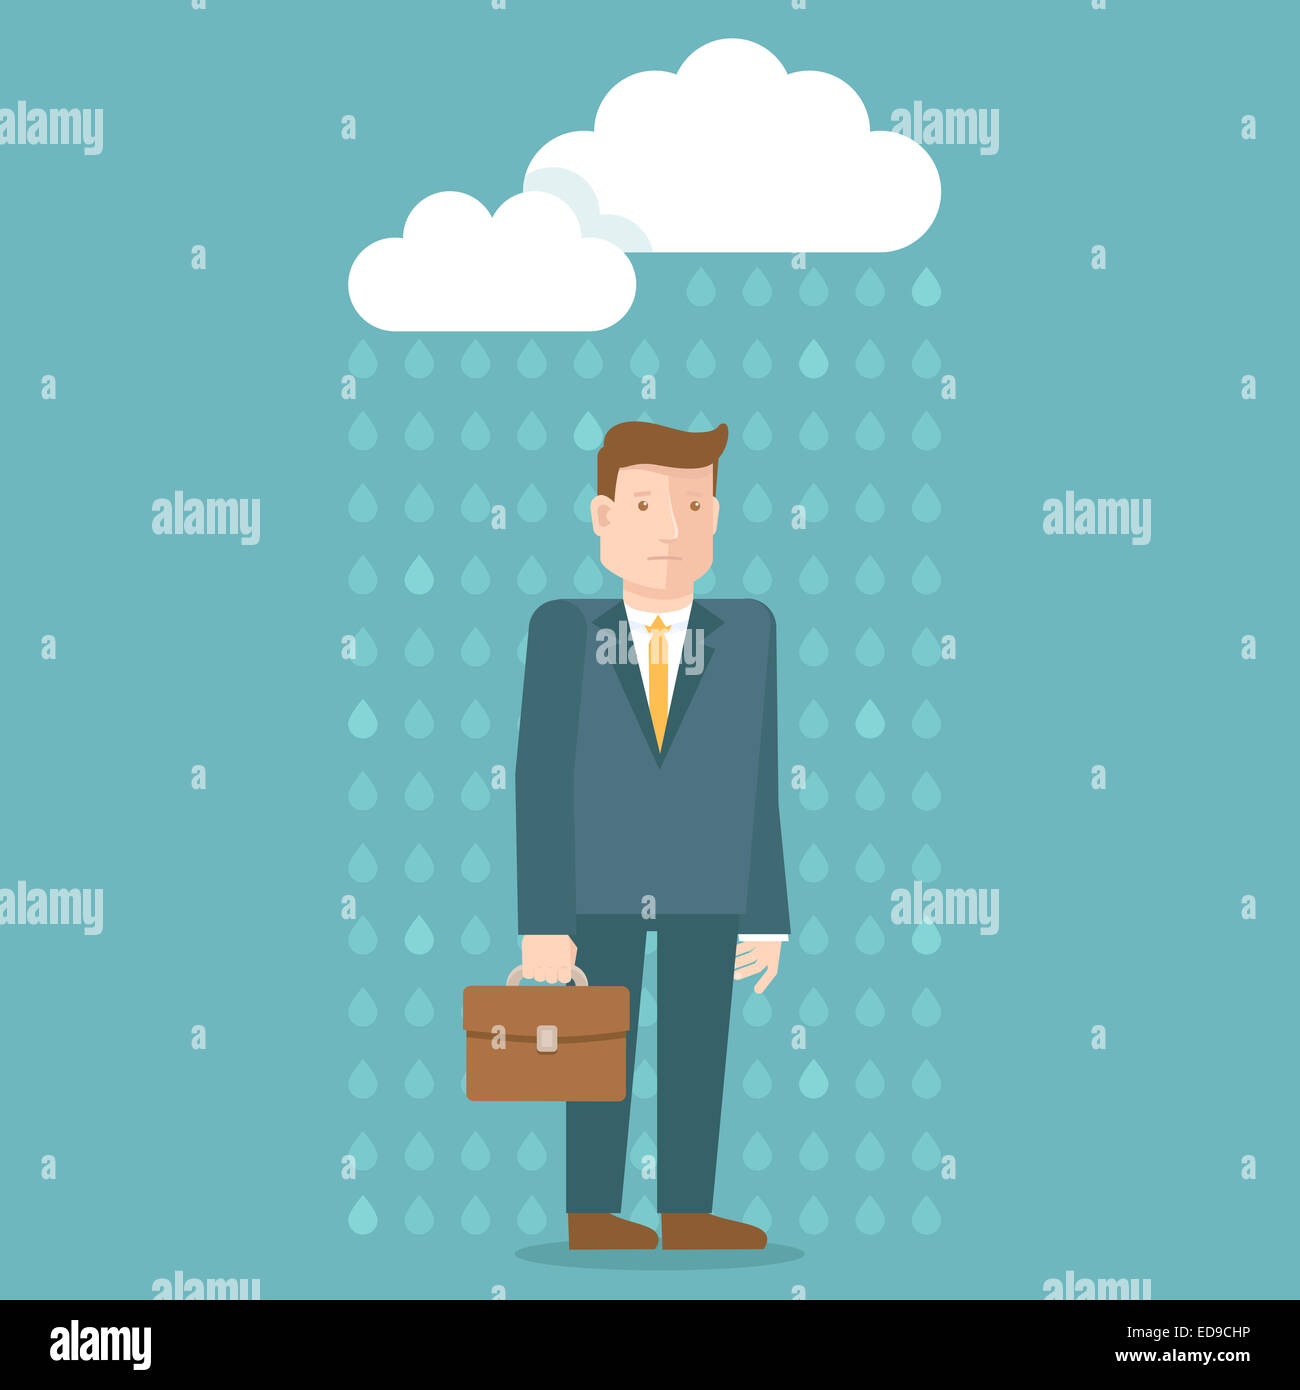 Bad day concept in flat style - businessman under the rain cloud - depressed and tired - Stock Image